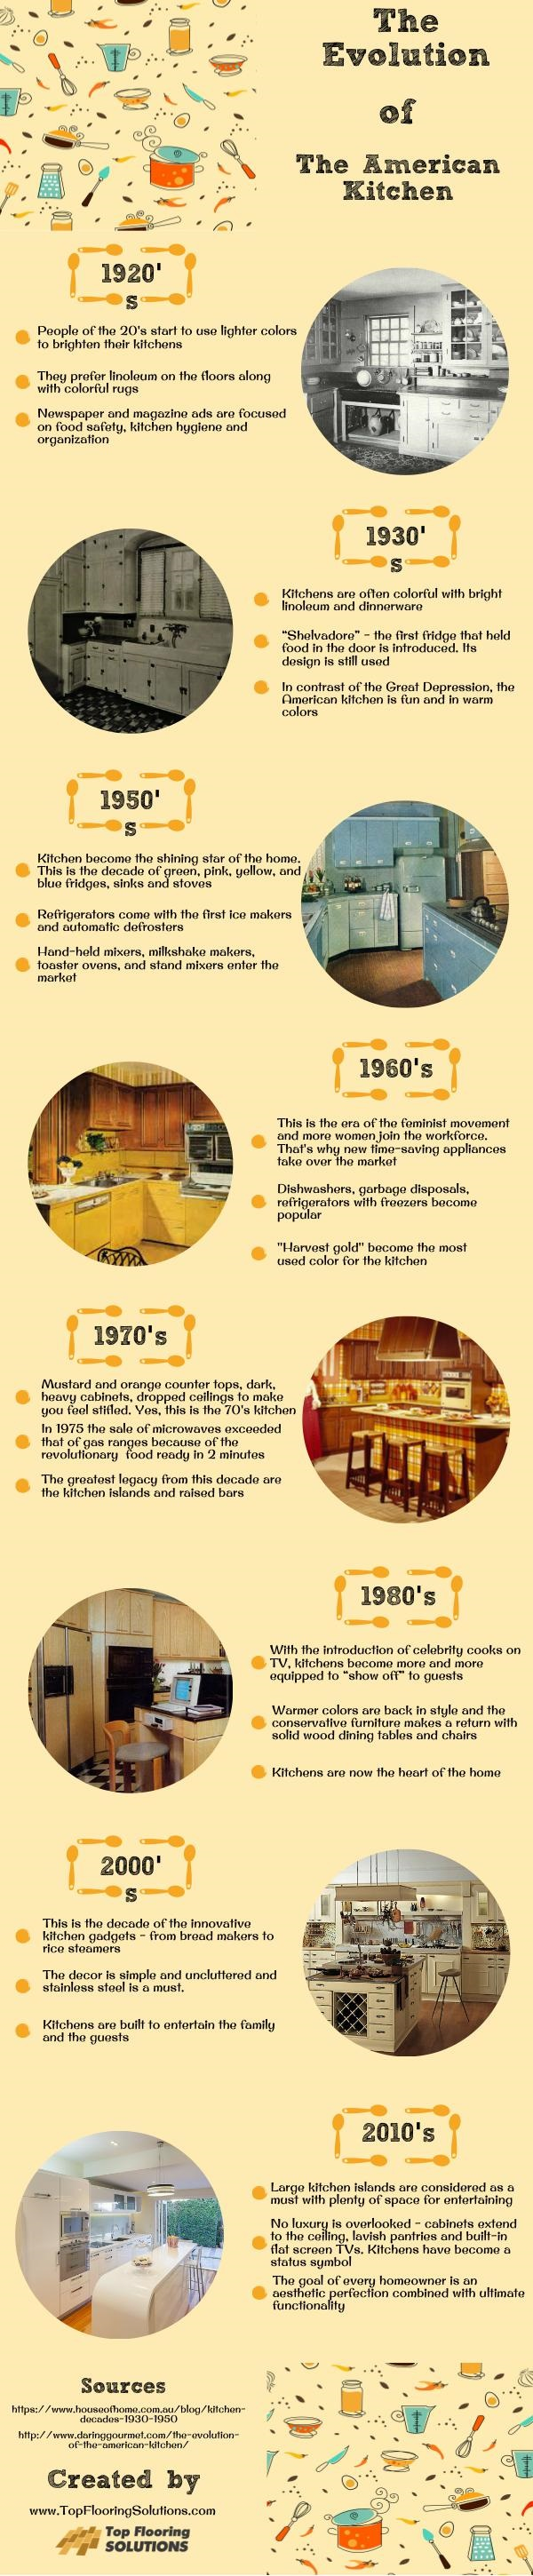 The Evolution of The American Kitchen